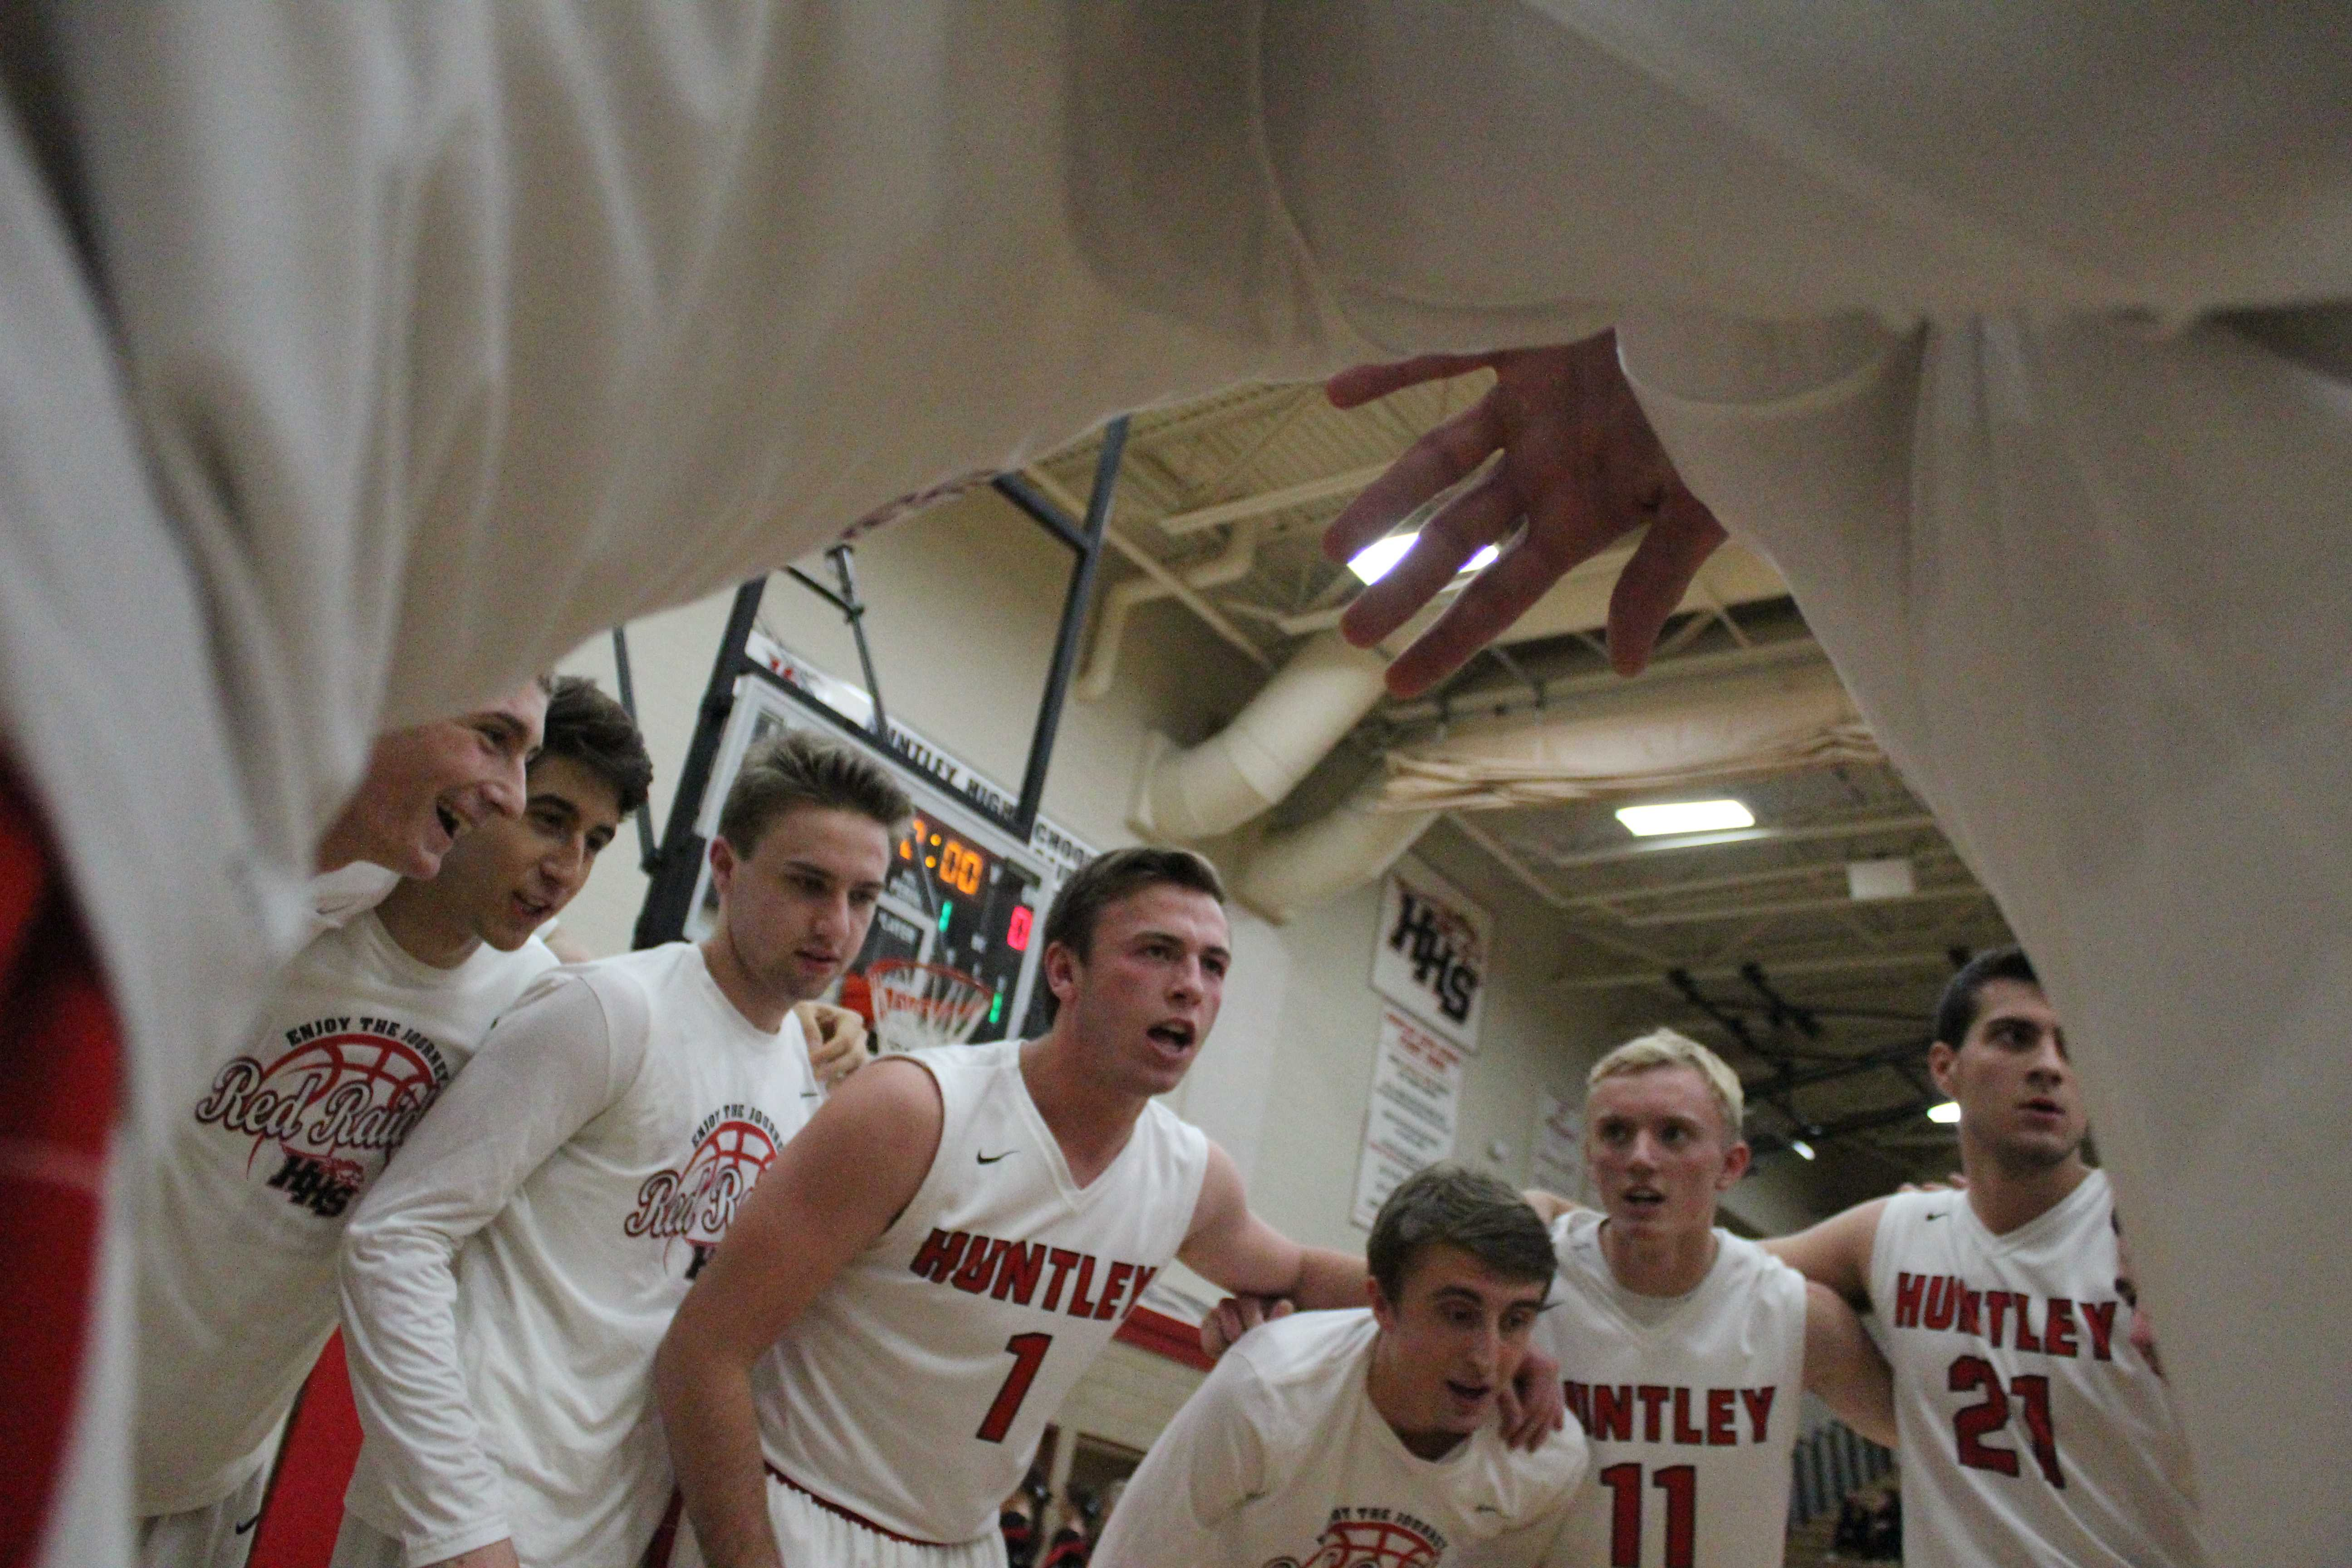 The boys varsity basketball team get in a group huddle during a game. (E. Pilat)